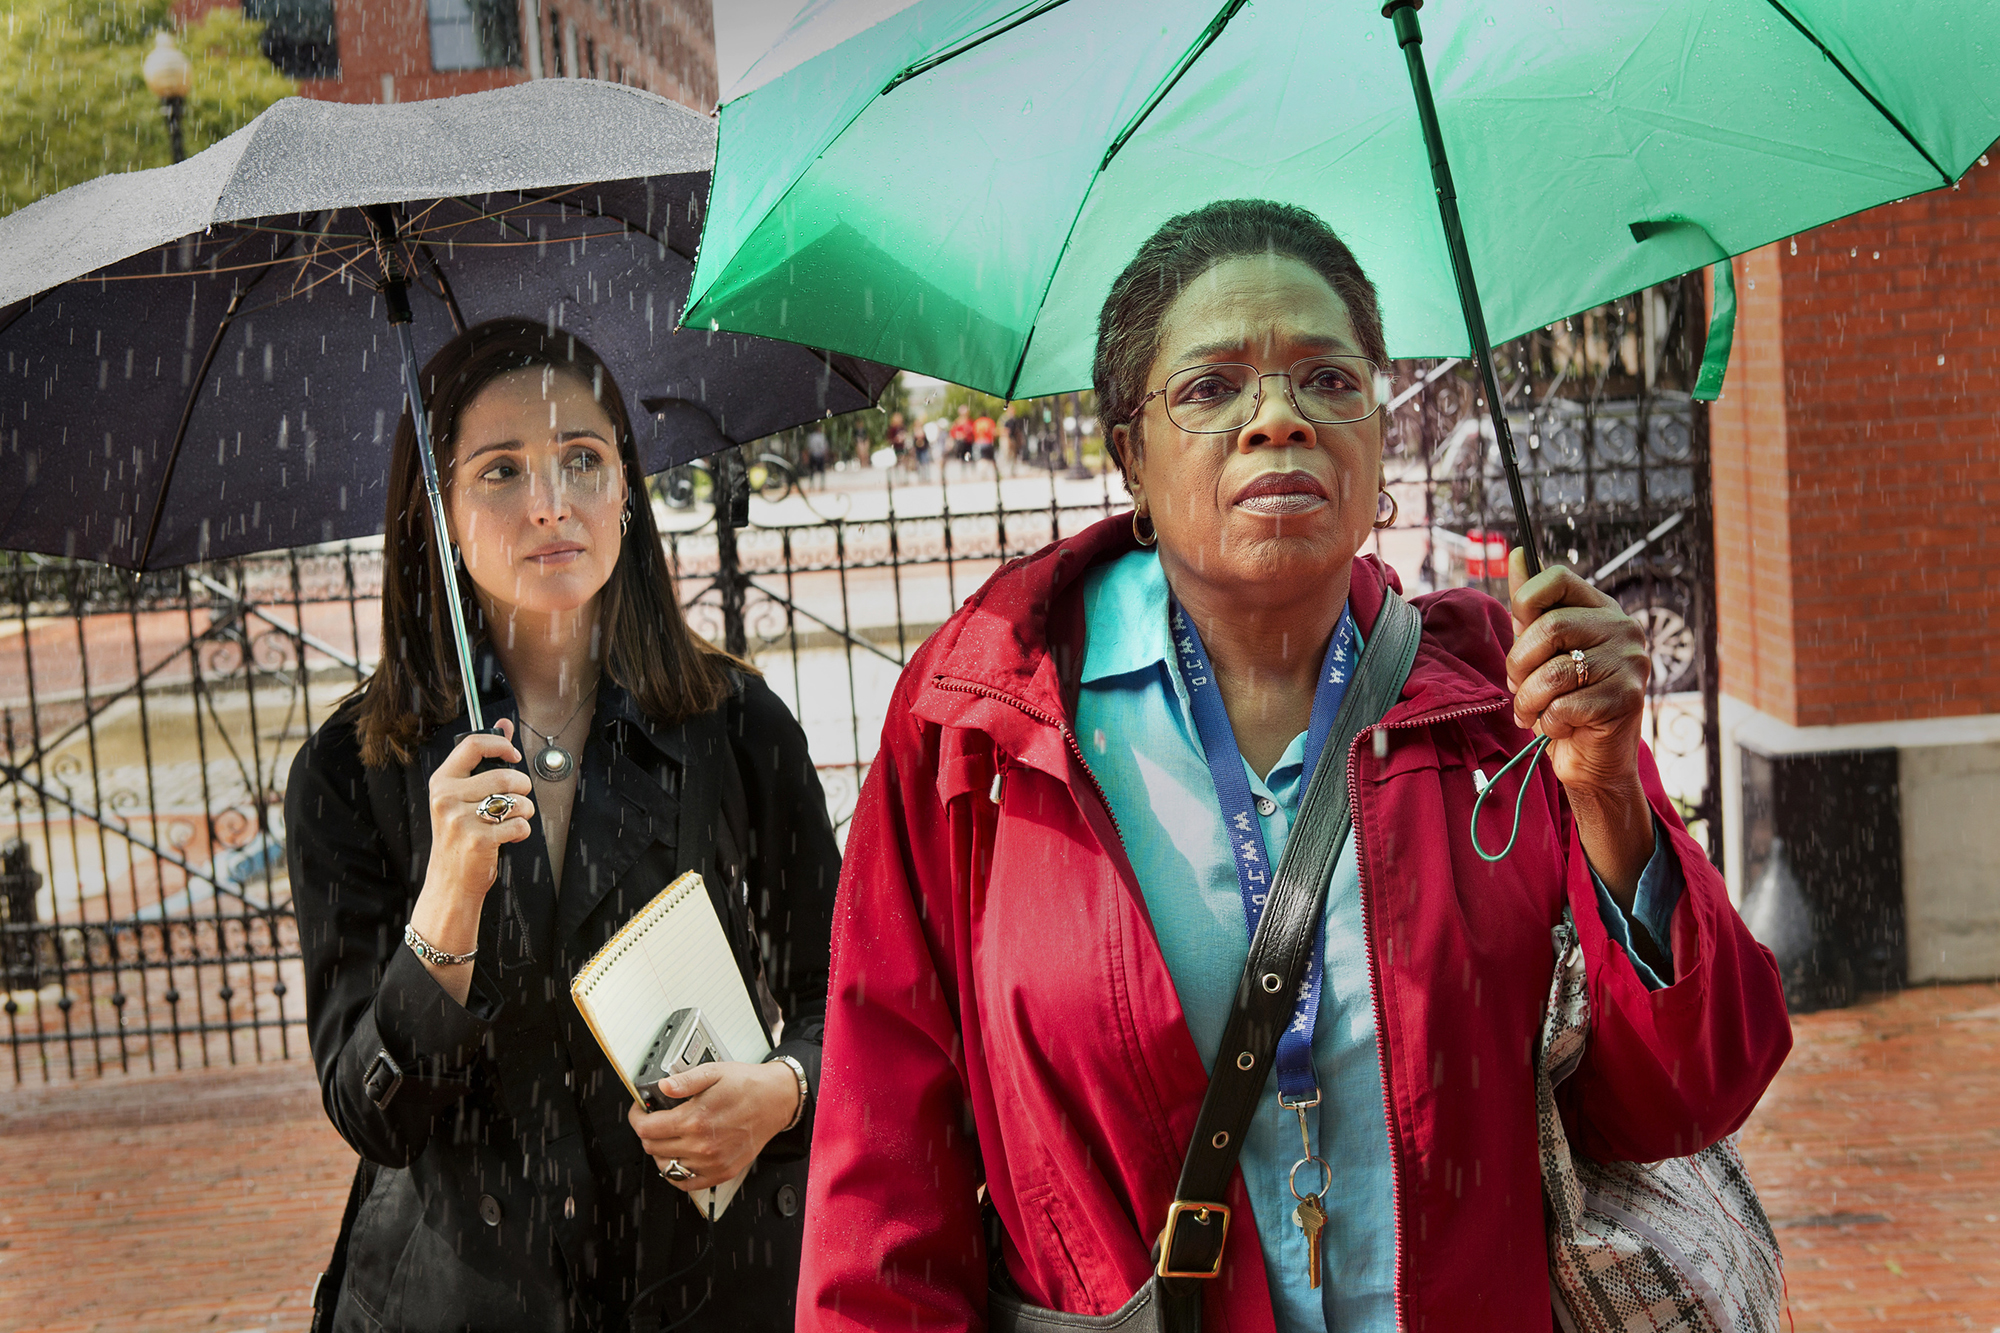 Rose Byrne and Oprah Winfrey in The Immortal Life of Henrietta Lacks.